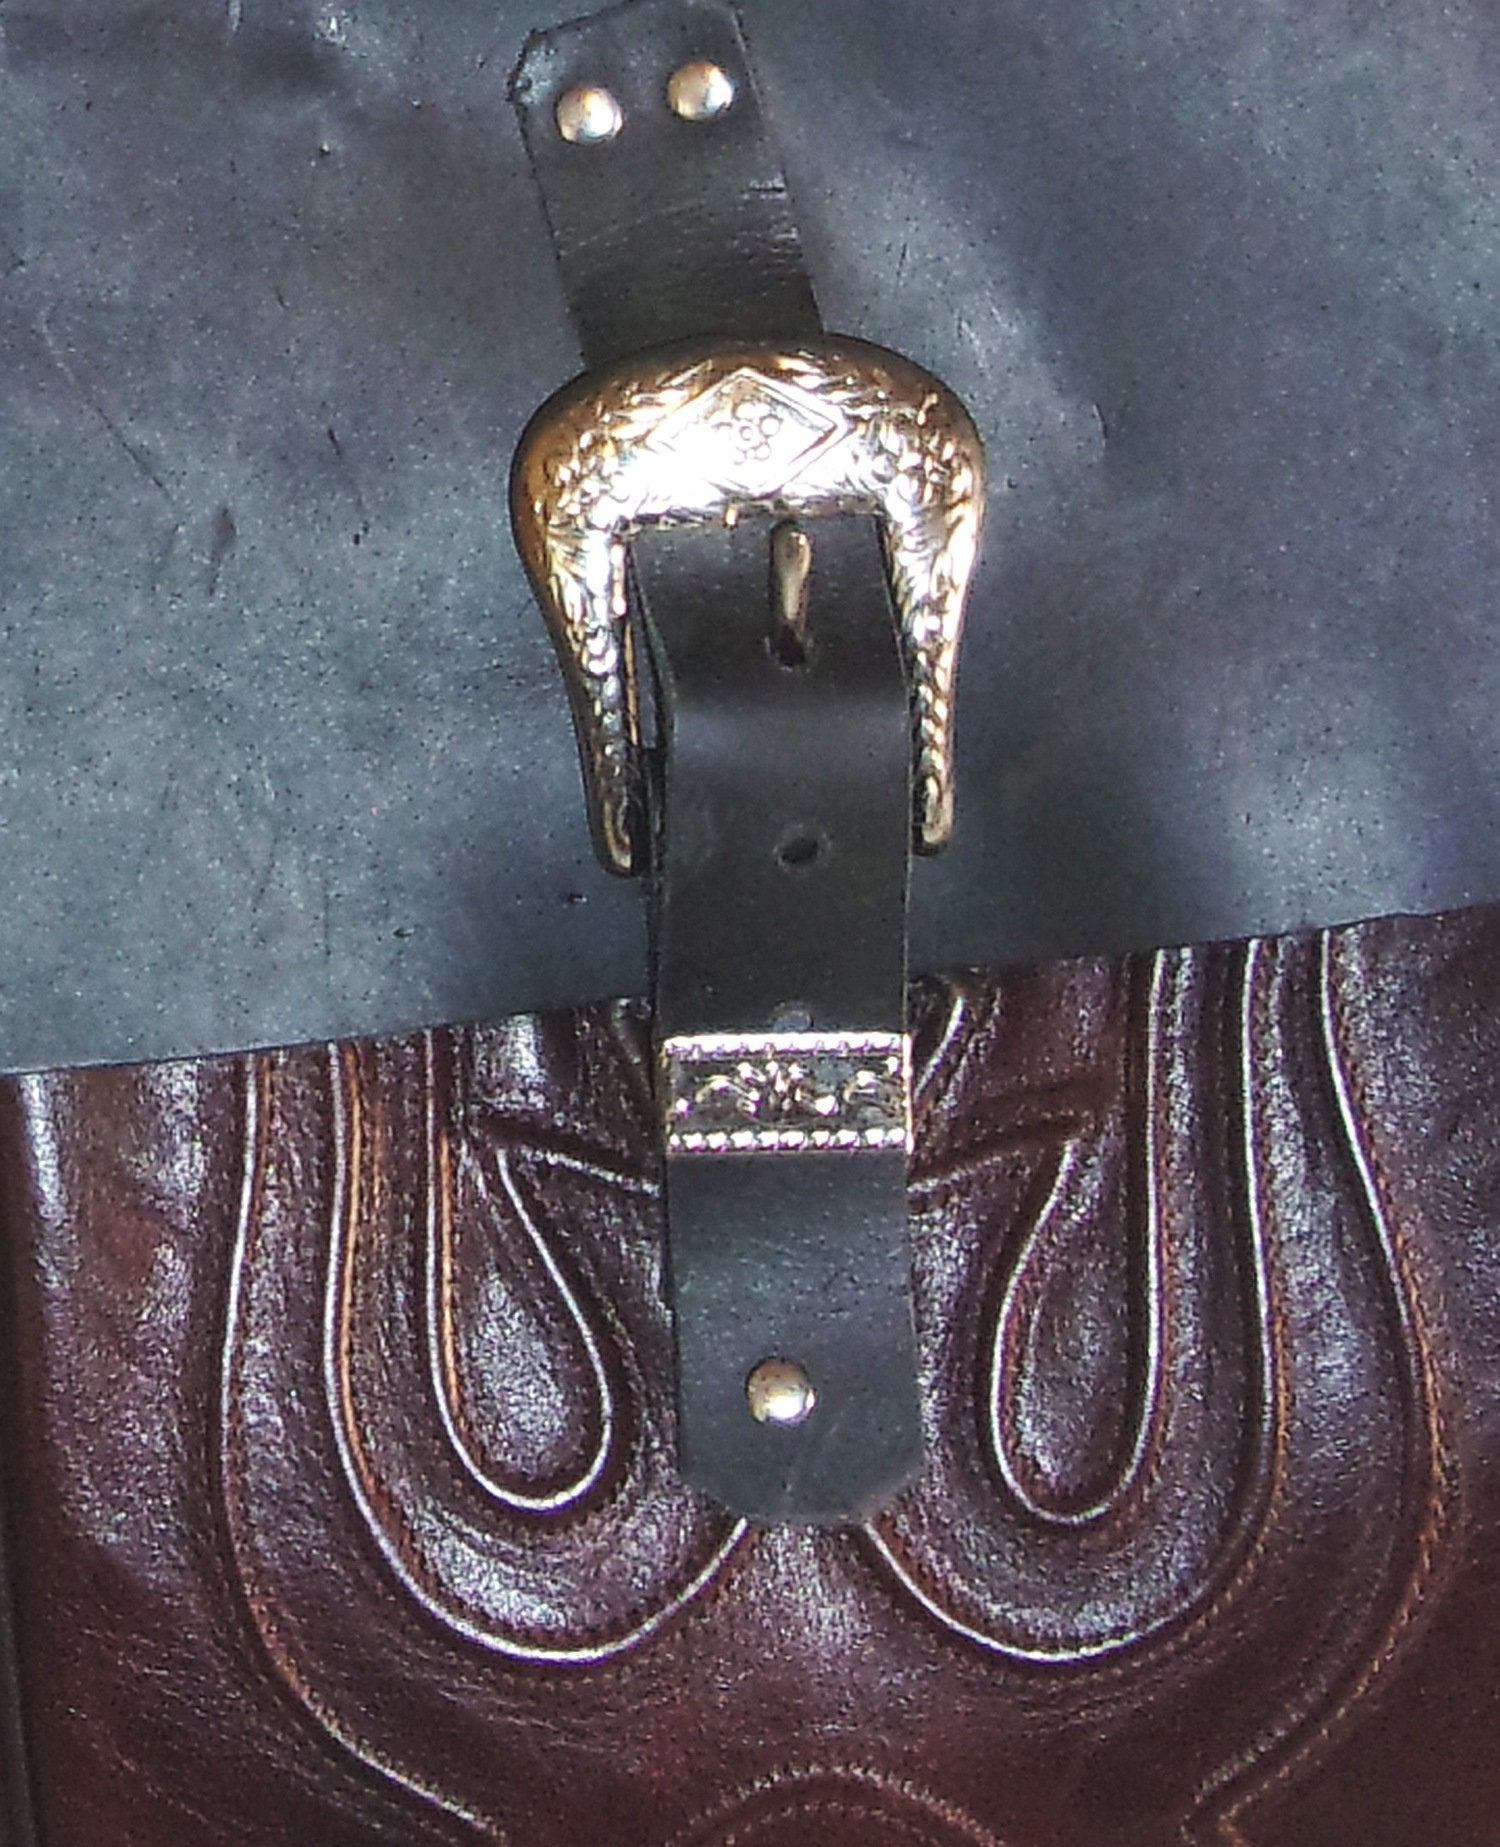 Burgundy Saddle-Bags - Distinctive Western Handbags, Purses and Totes